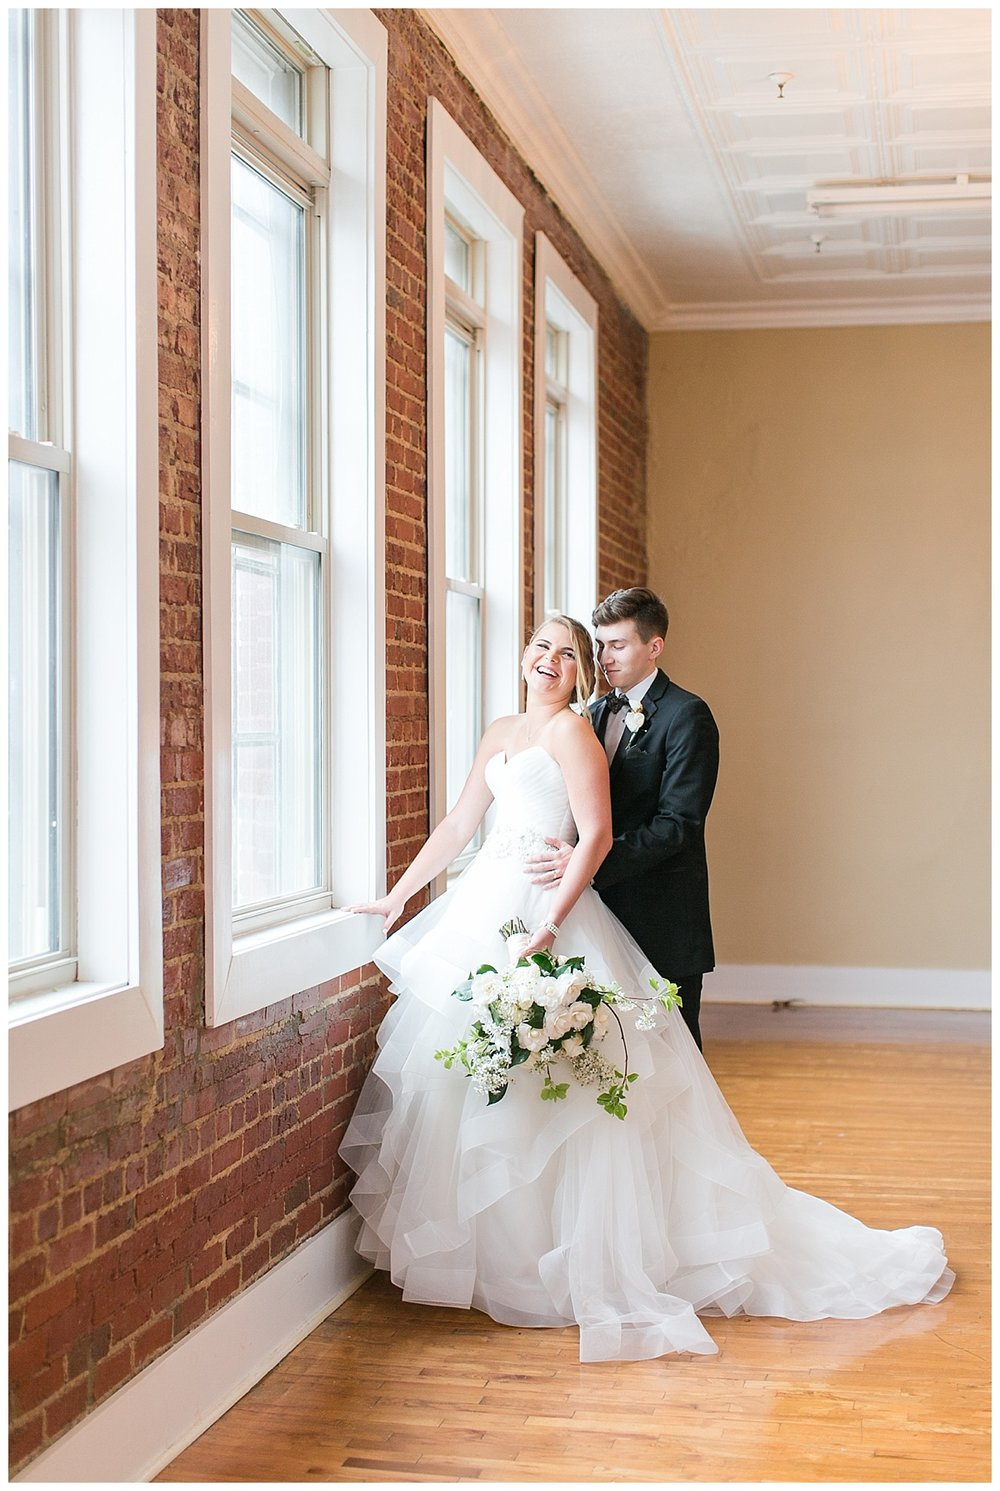 Scott's_Downtown_Monroe_Ga_Wedding_Photograpehrs_0023.jpg